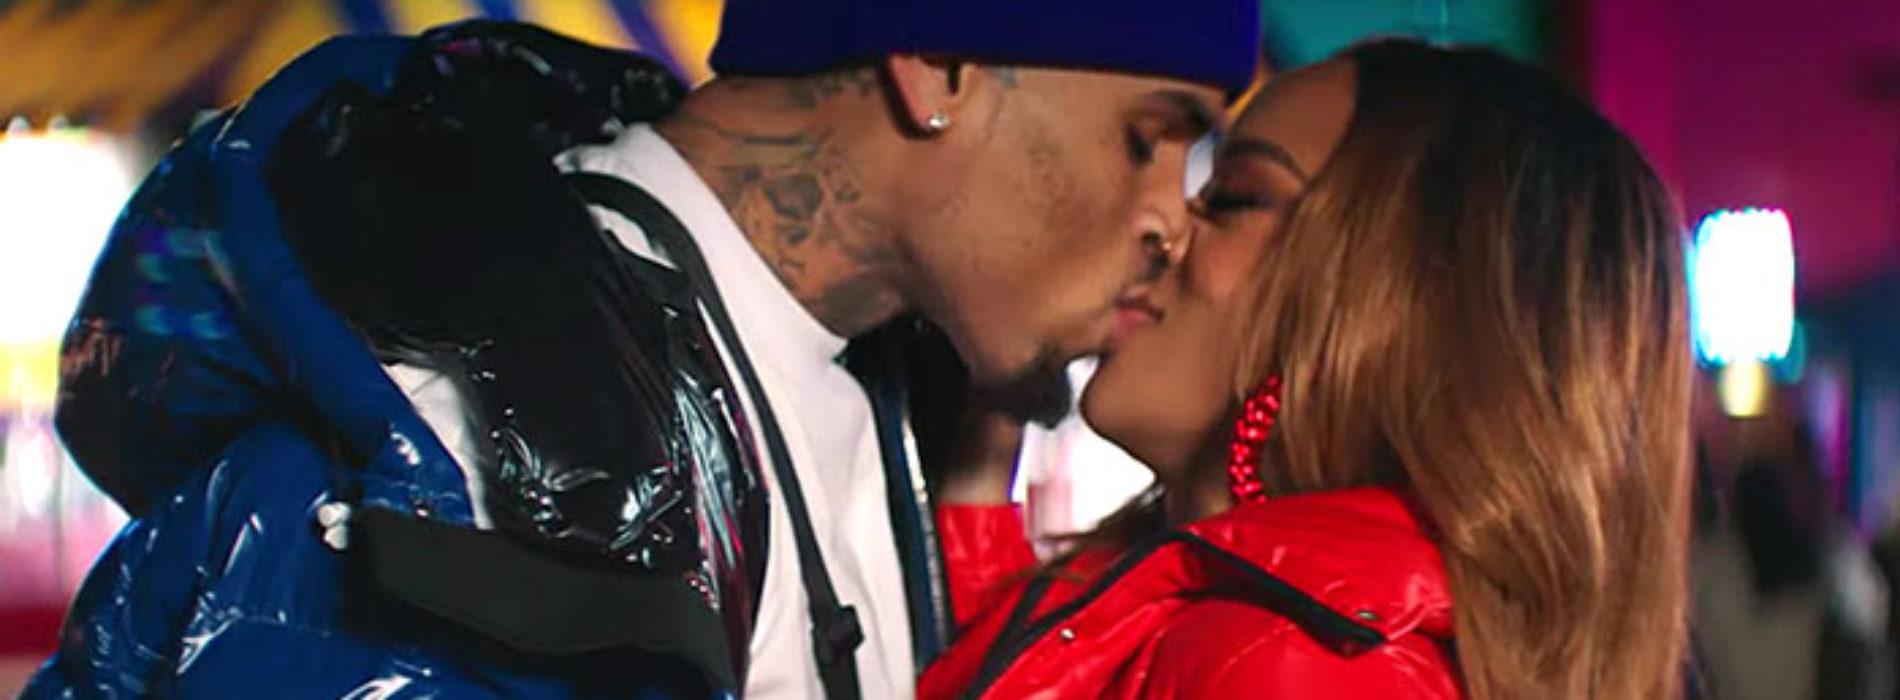 Chris Brown – Undecided (Official Video) – Janvier 2019